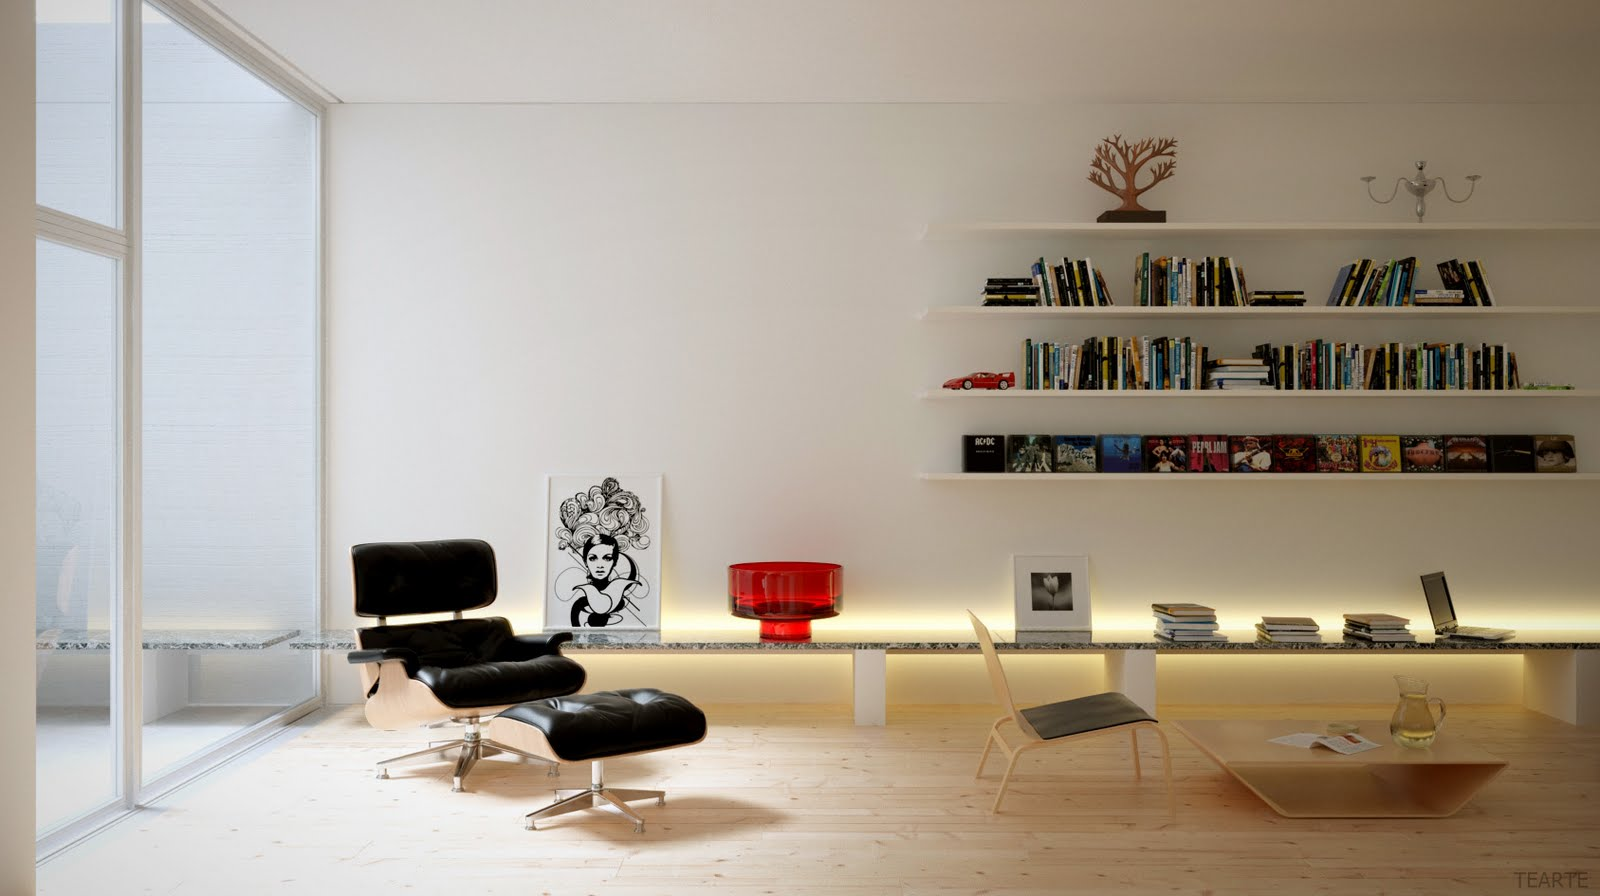 Living space reading area interior design ideas - Living in small spaces home minimalist ...